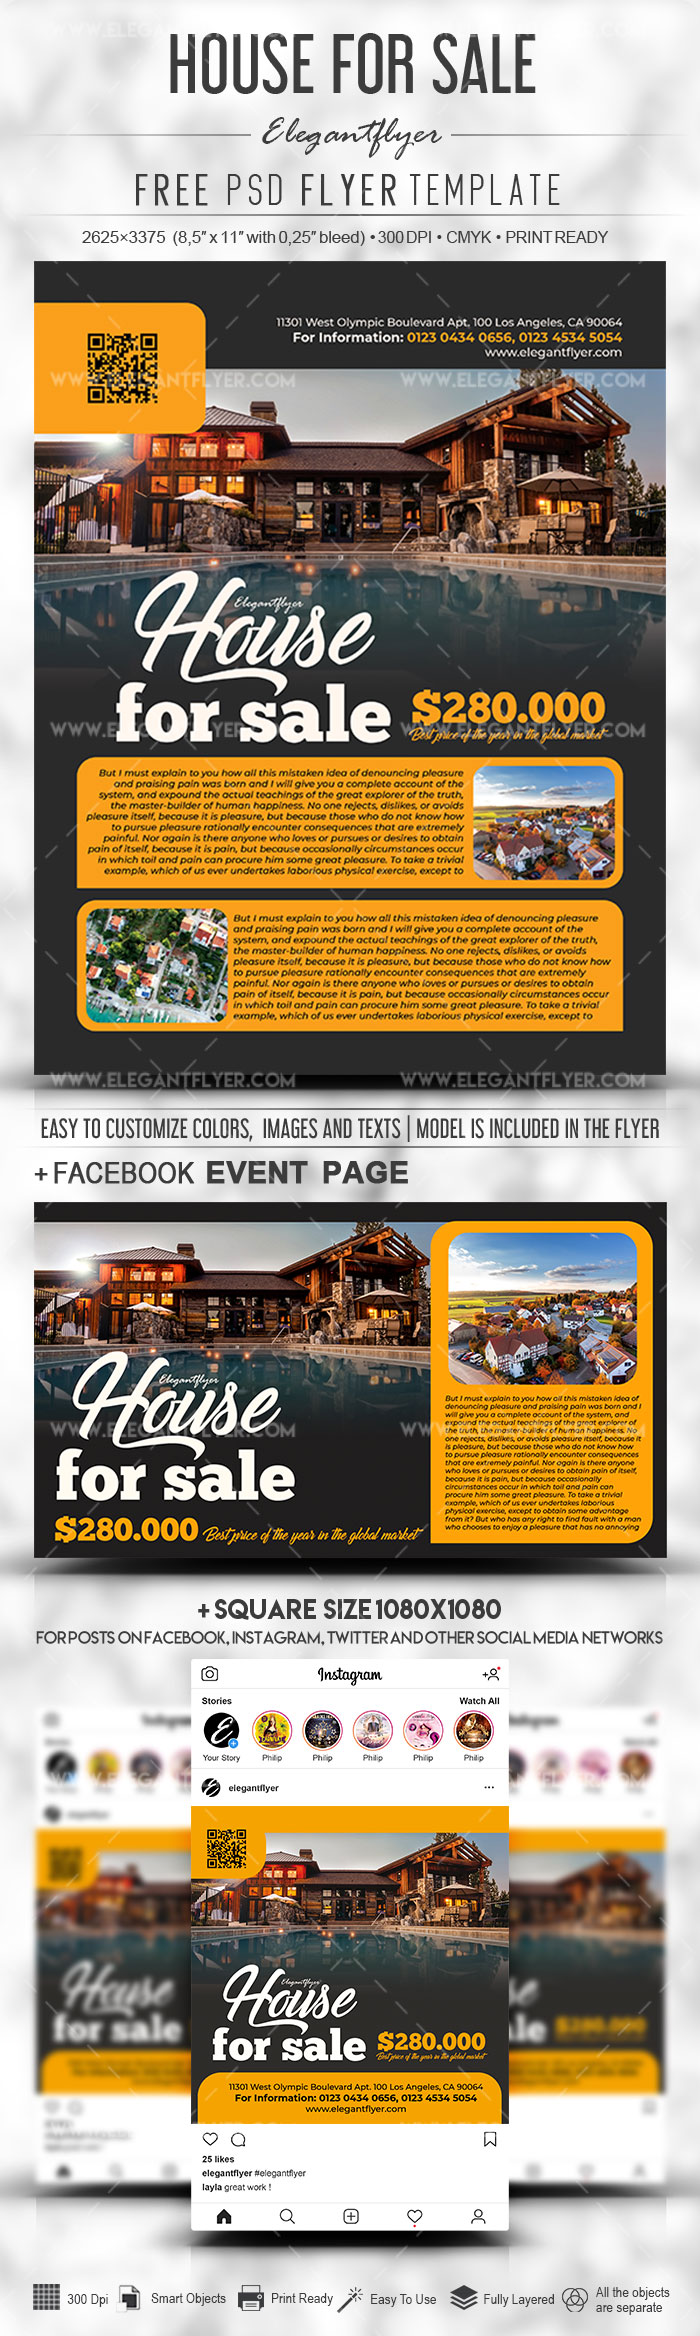 House for Sale – Free PSD Flyer Template + Facebook Cover + Instagram Post